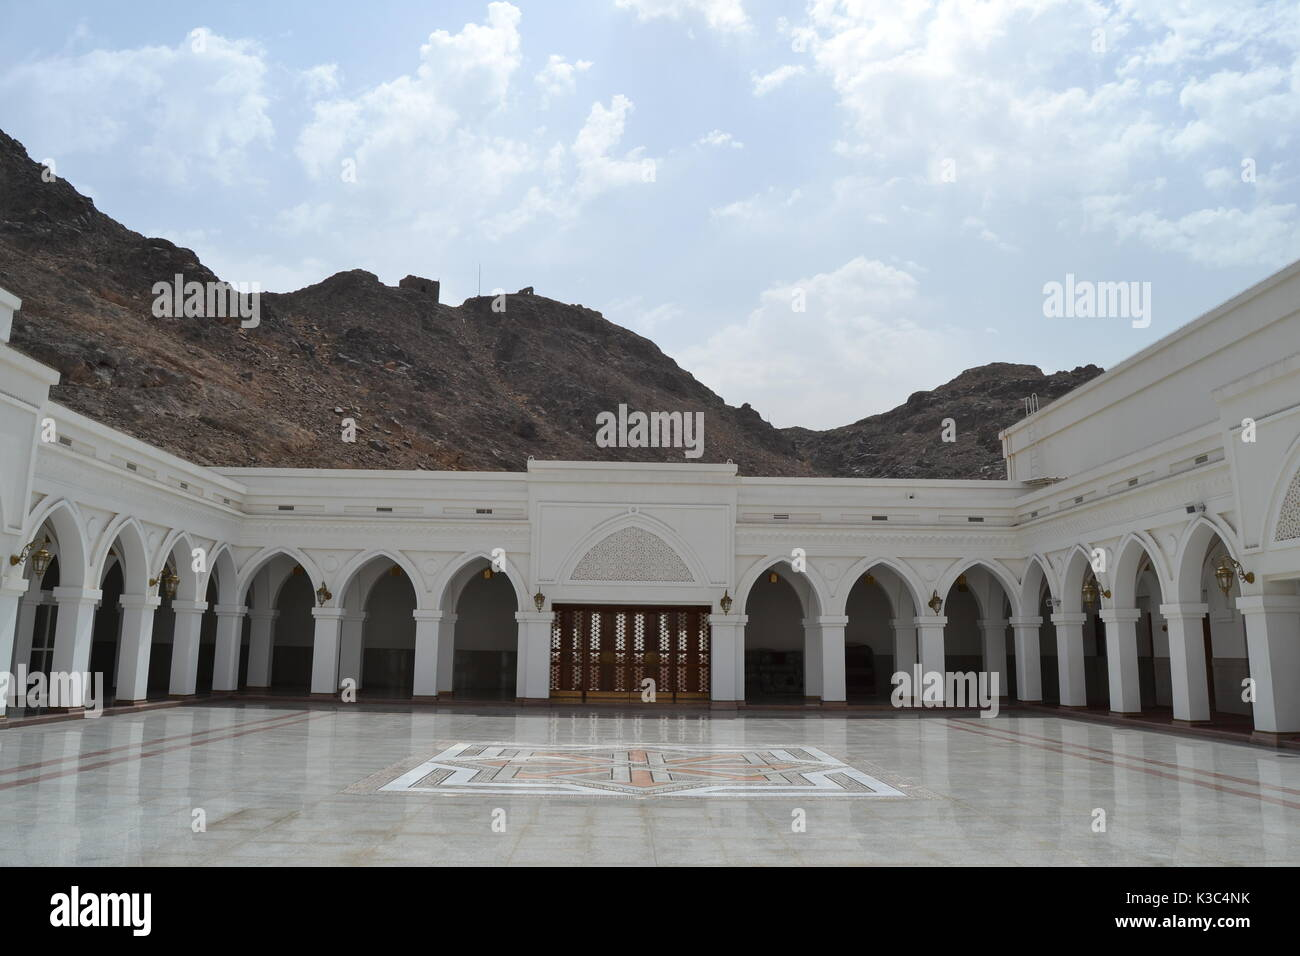 The Seven Mosques - Stock Image